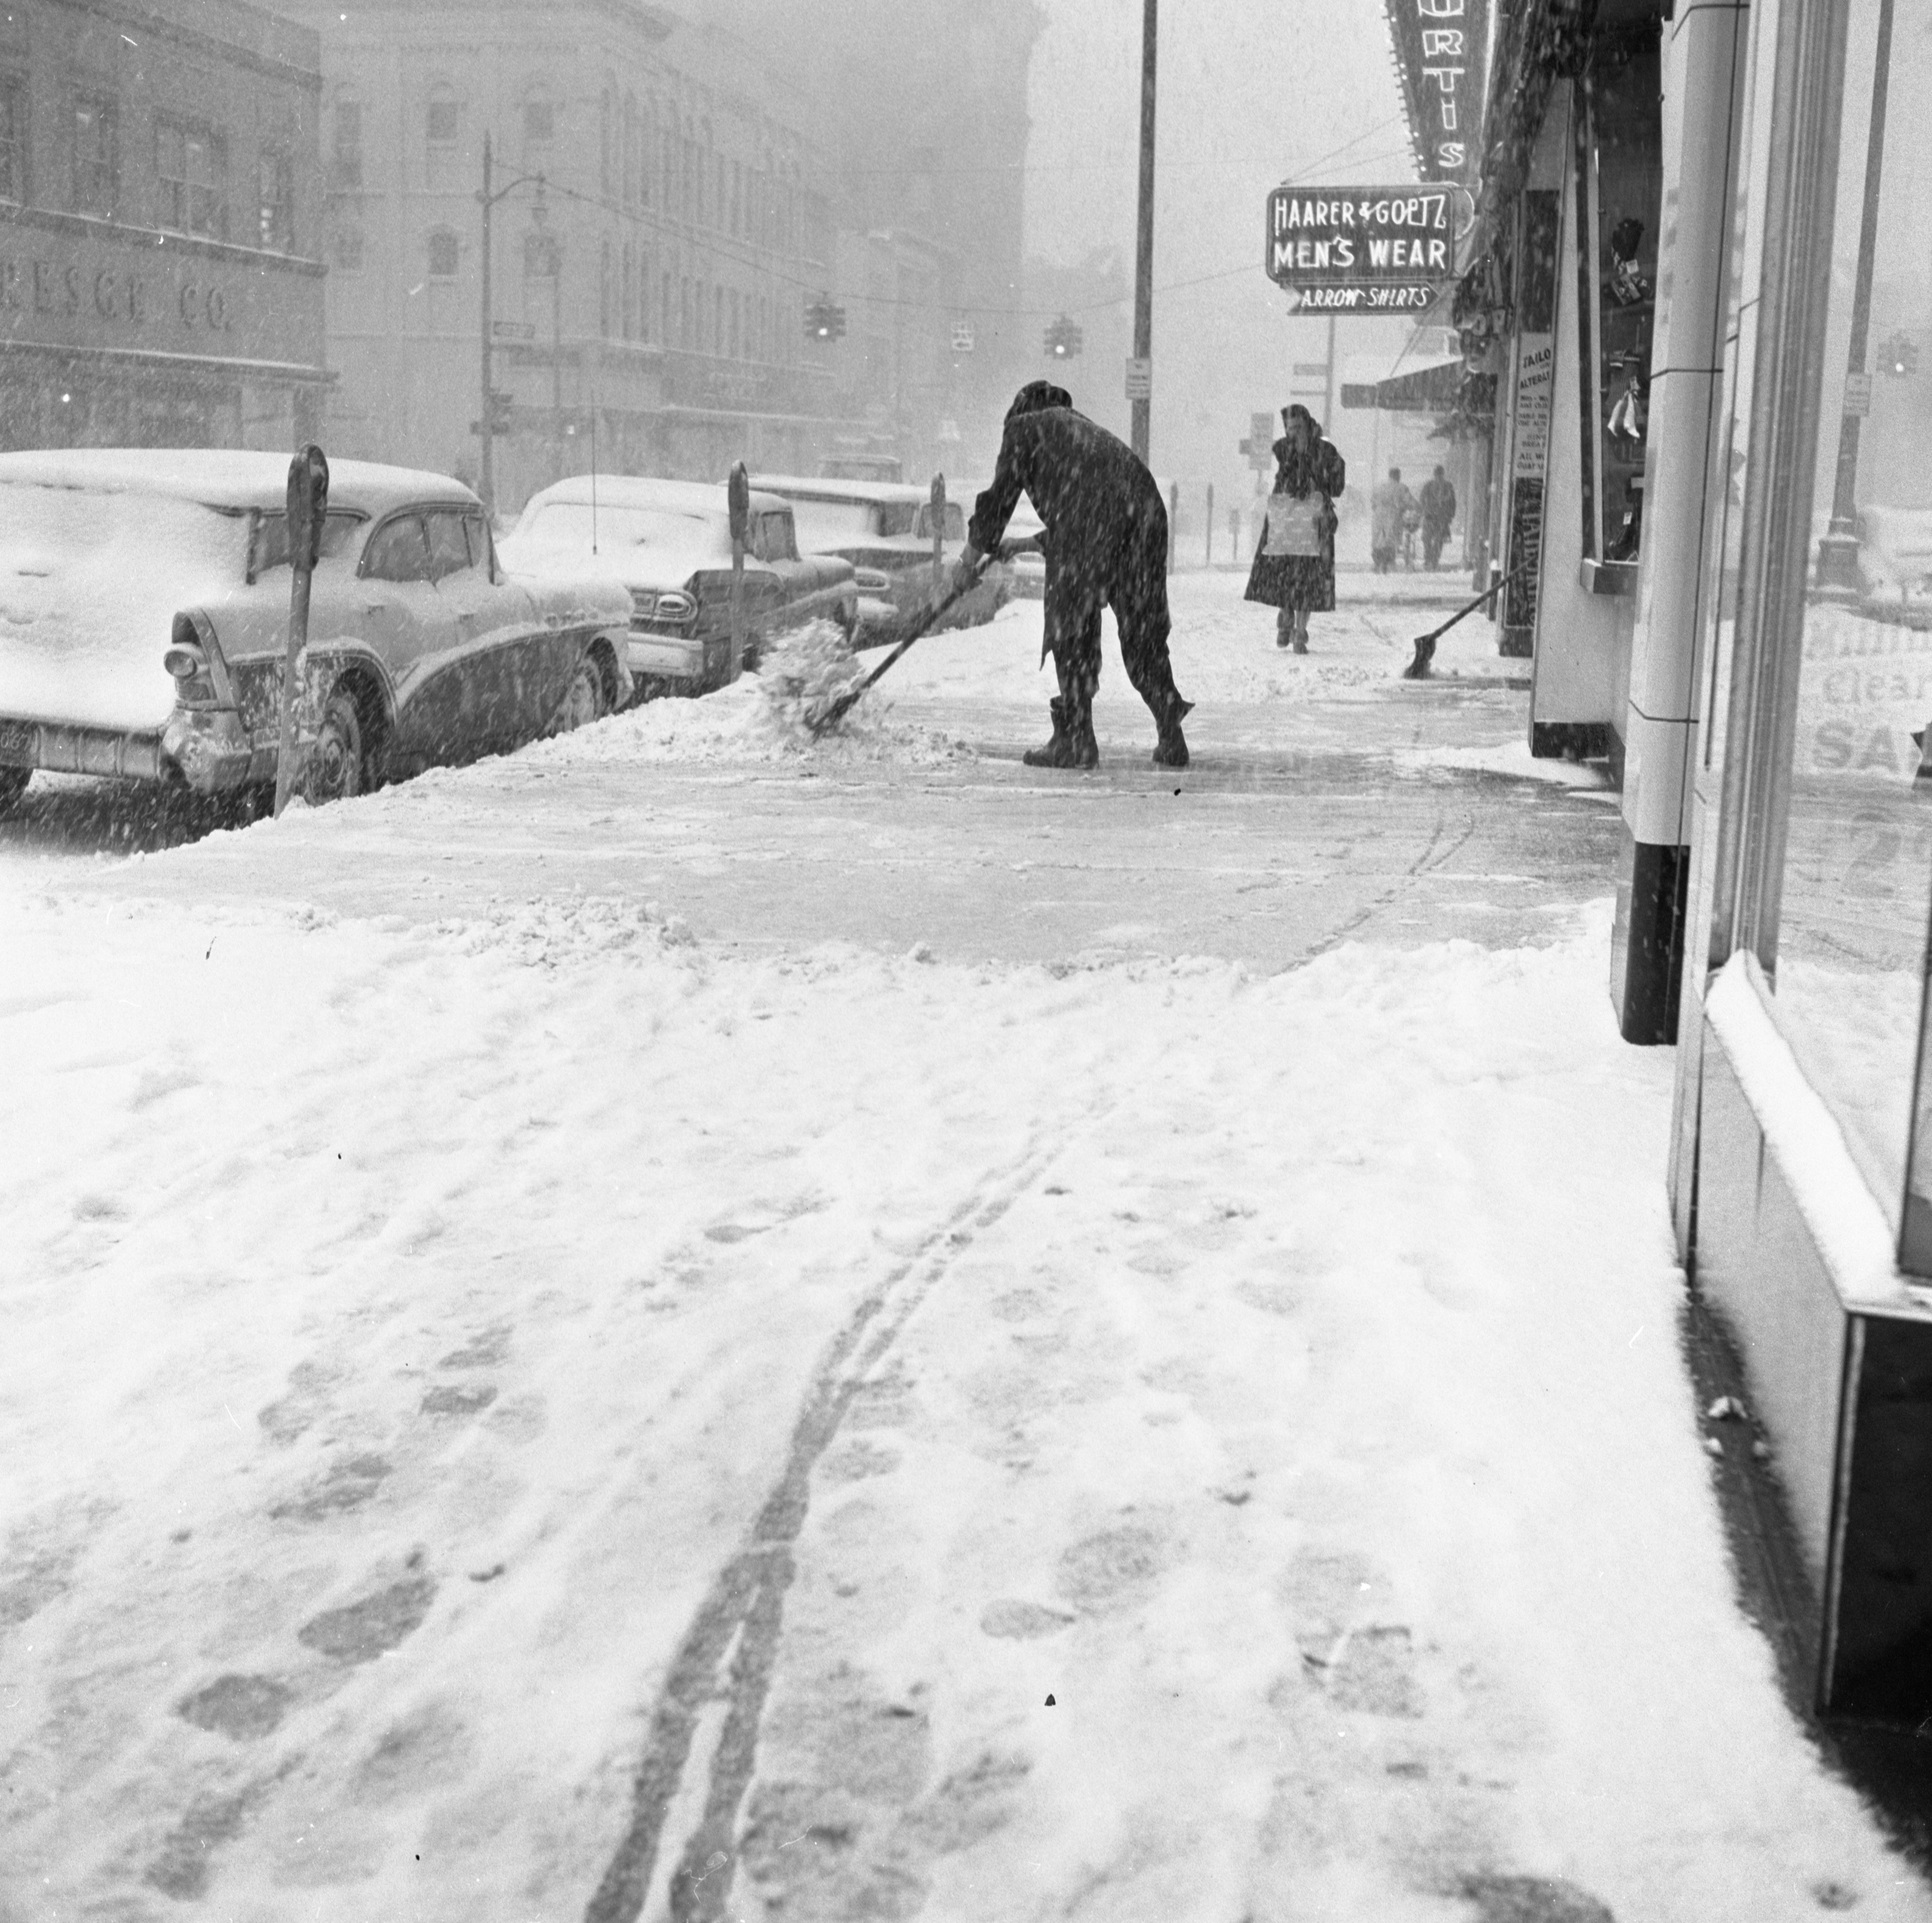 Shoveling Main Street Sidewalk In Snow Storm, February 1960 image